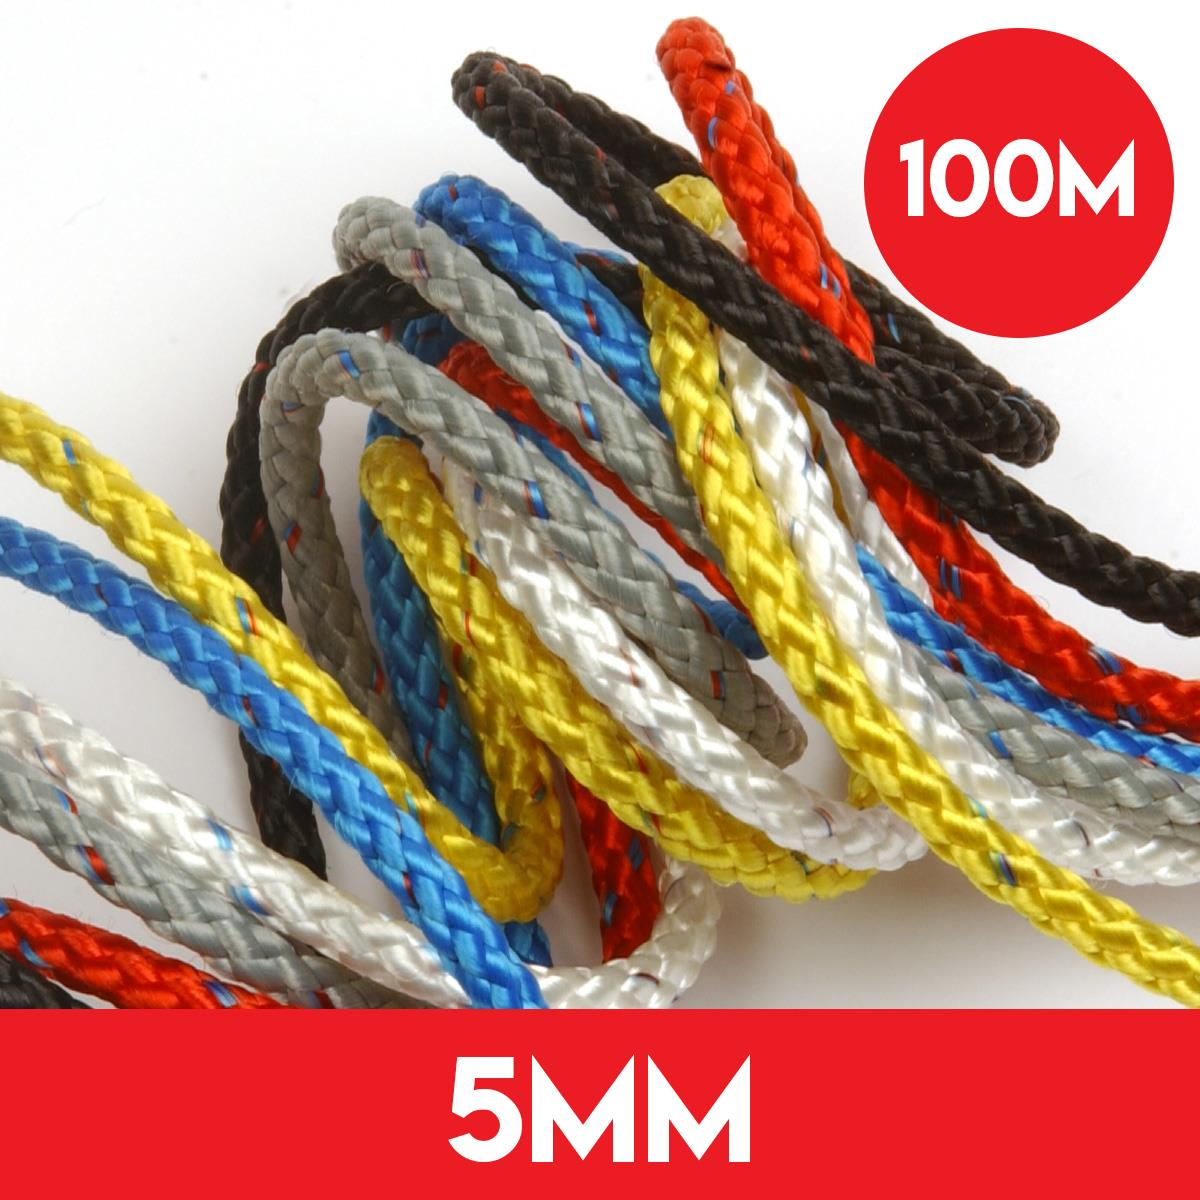 100m of 5mm 8 Plait Pre Stretched Rope